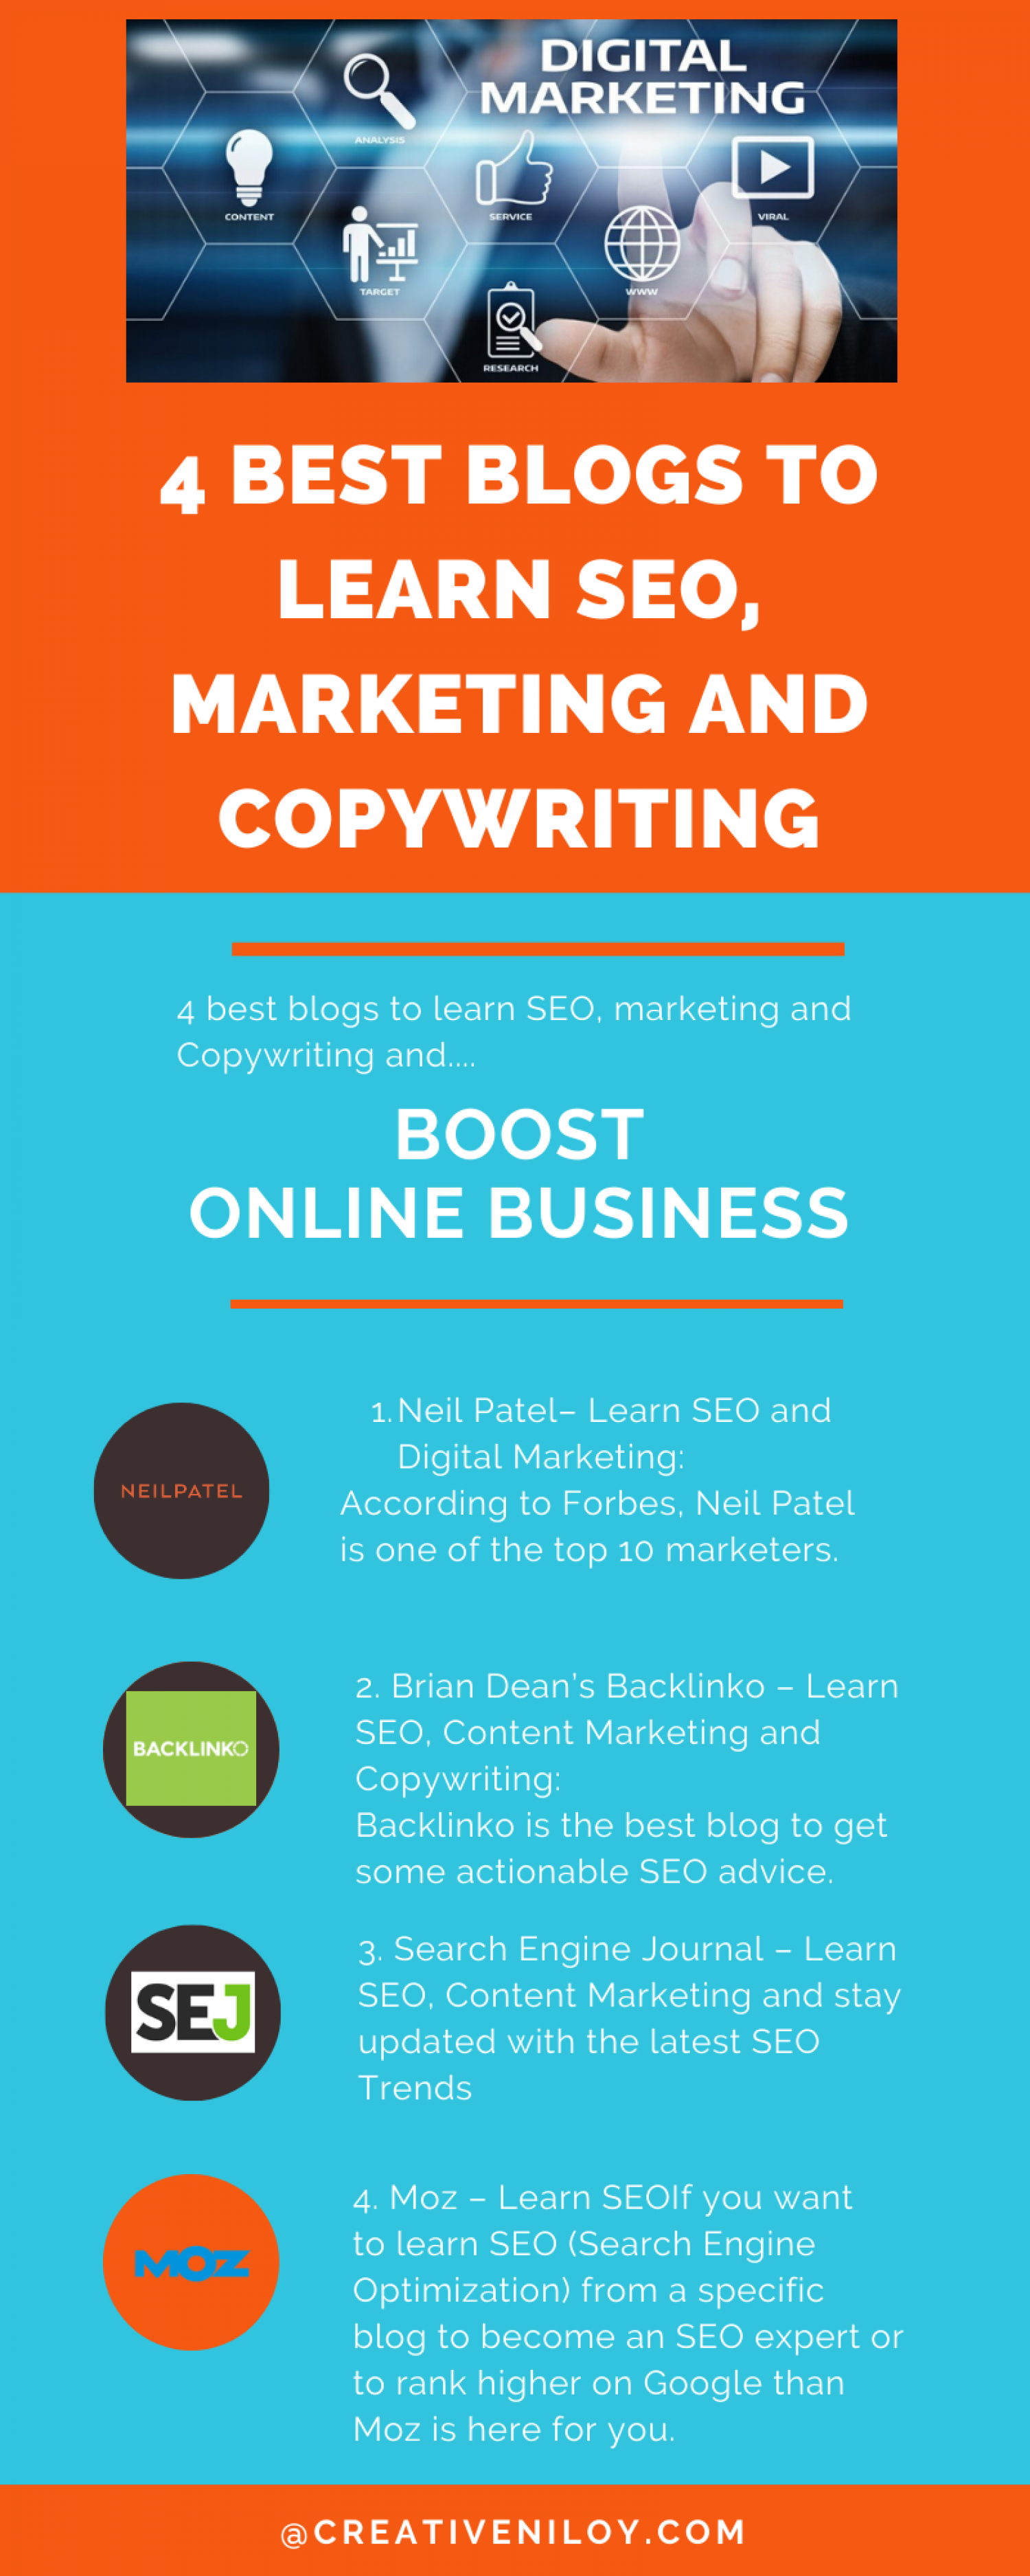 7 Best Blogs to Learn SEO, Marketing and Copywriting Infographic